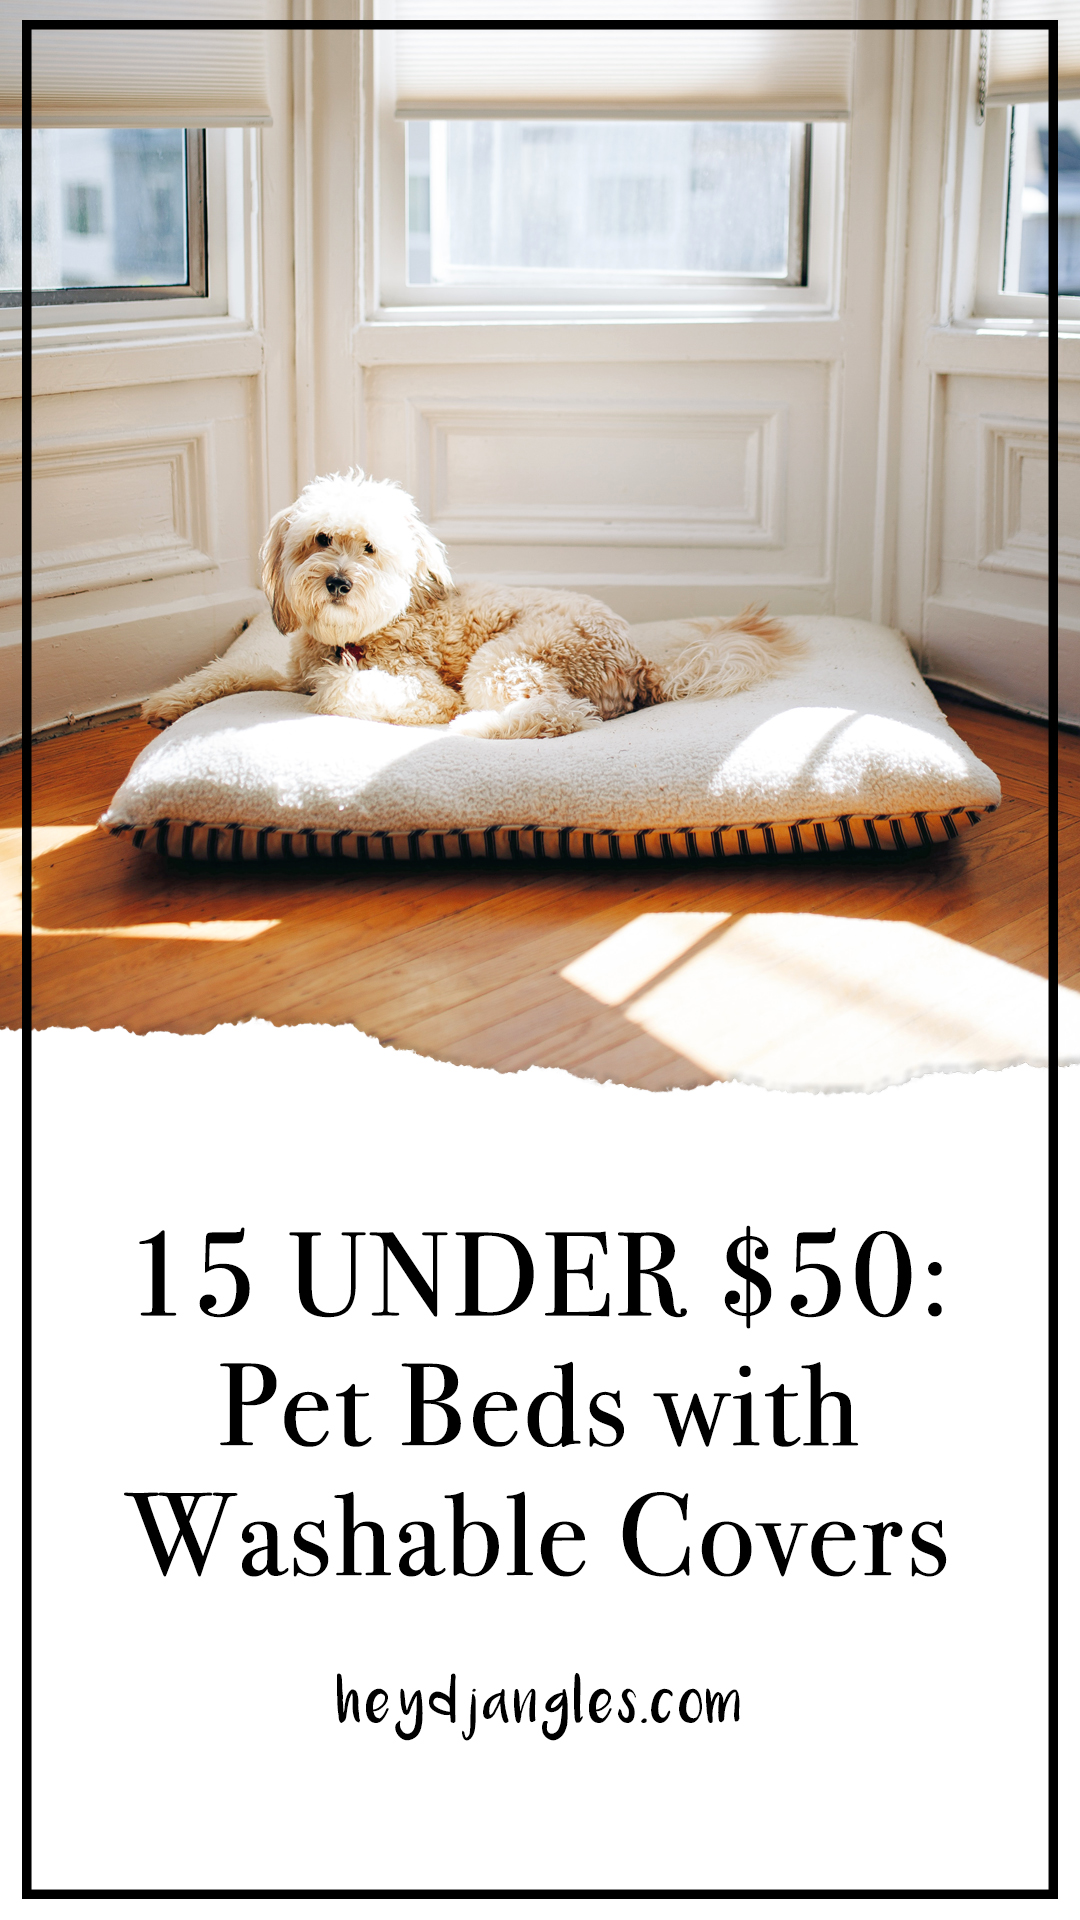 15 UNDER $50: Pet Beds With Washable Covers – Hey, Djangles. Best affordable easy-care dog beds, washable dog bed covers, small, medium and large dog bed ideas, orthopaedic dog beds with washable covers, dog ideas, dog stuff. #dogbed #doglover